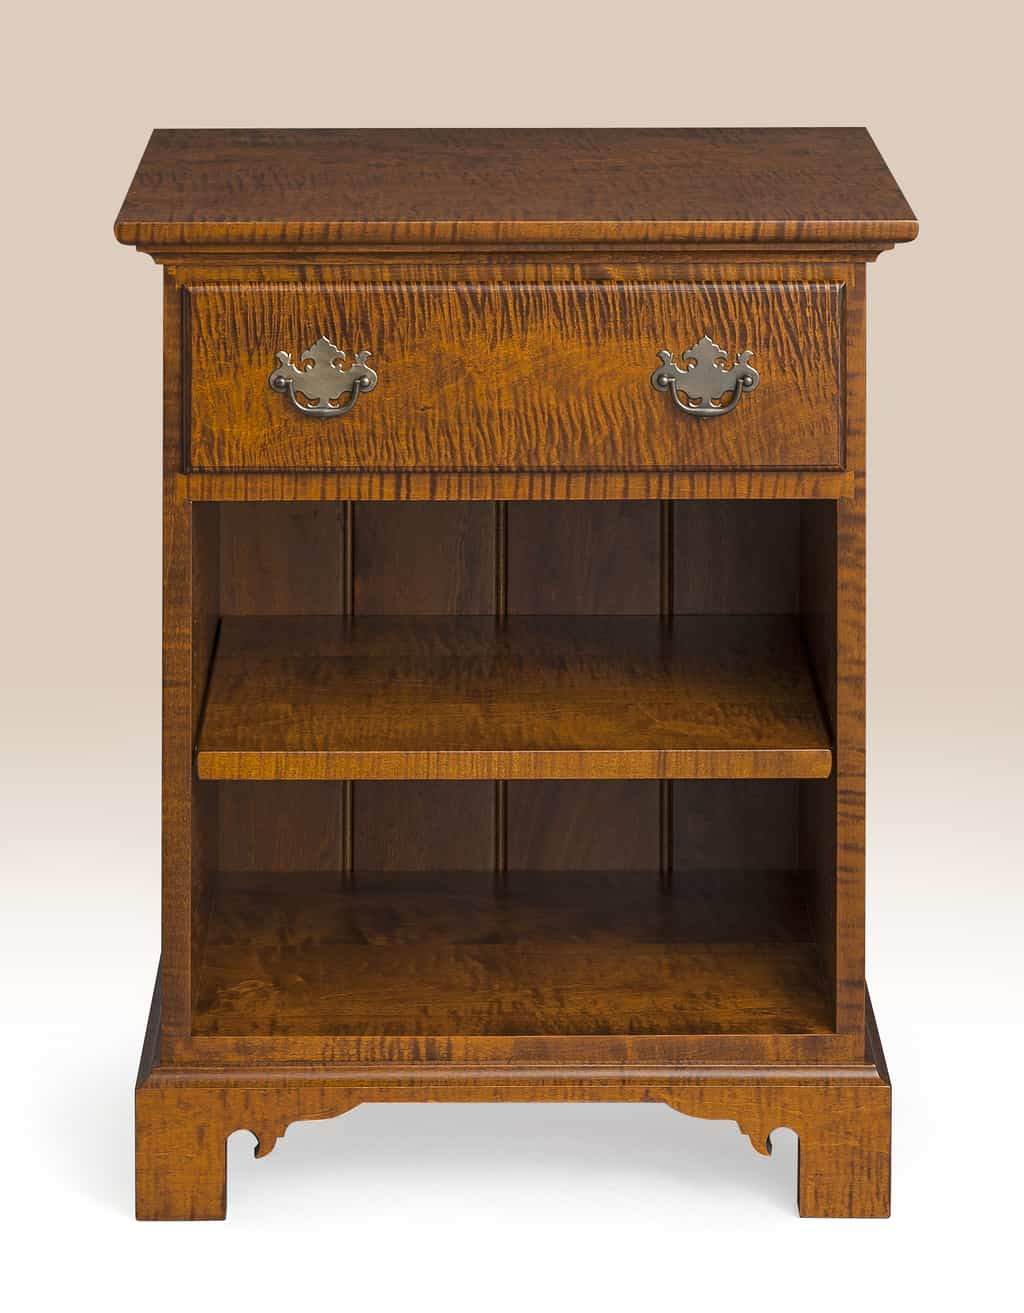 Historical CT Bedroom Stand Image